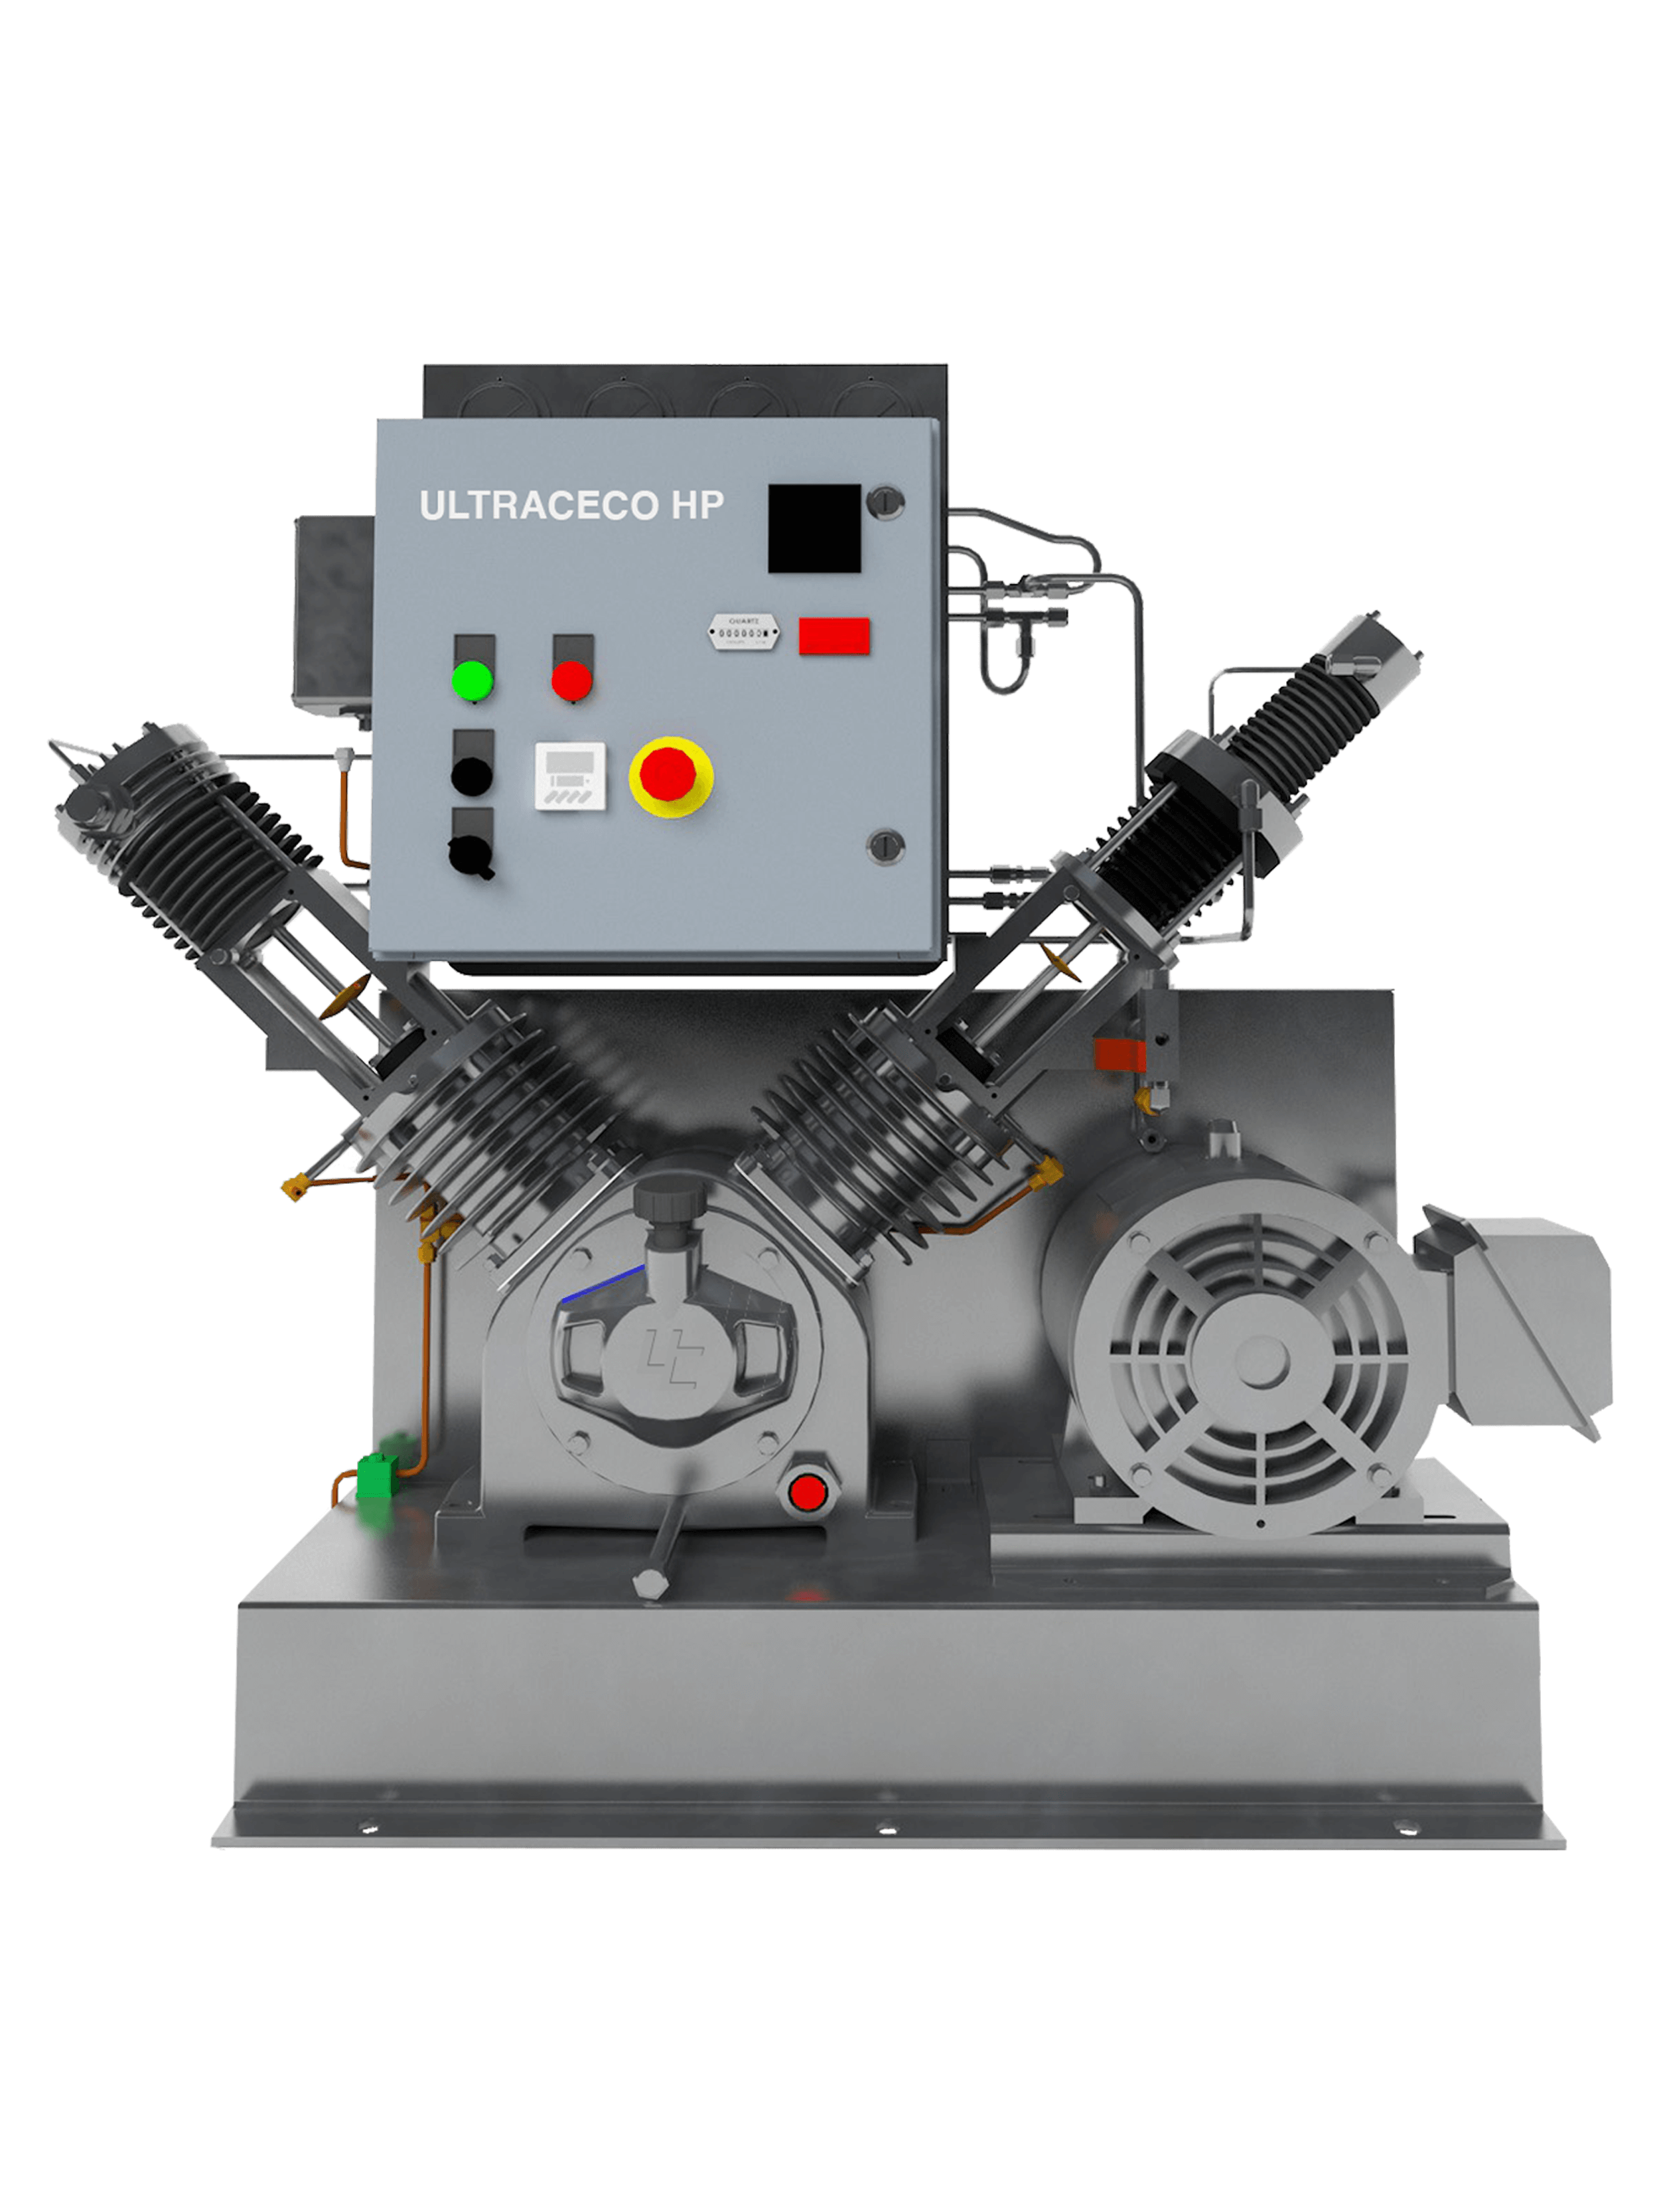 The high-pressure oxygen booster ULTRACECO HP was developed to meet the requirements of safe and reliable oxygen compression service with special safety devices and electrical protections.